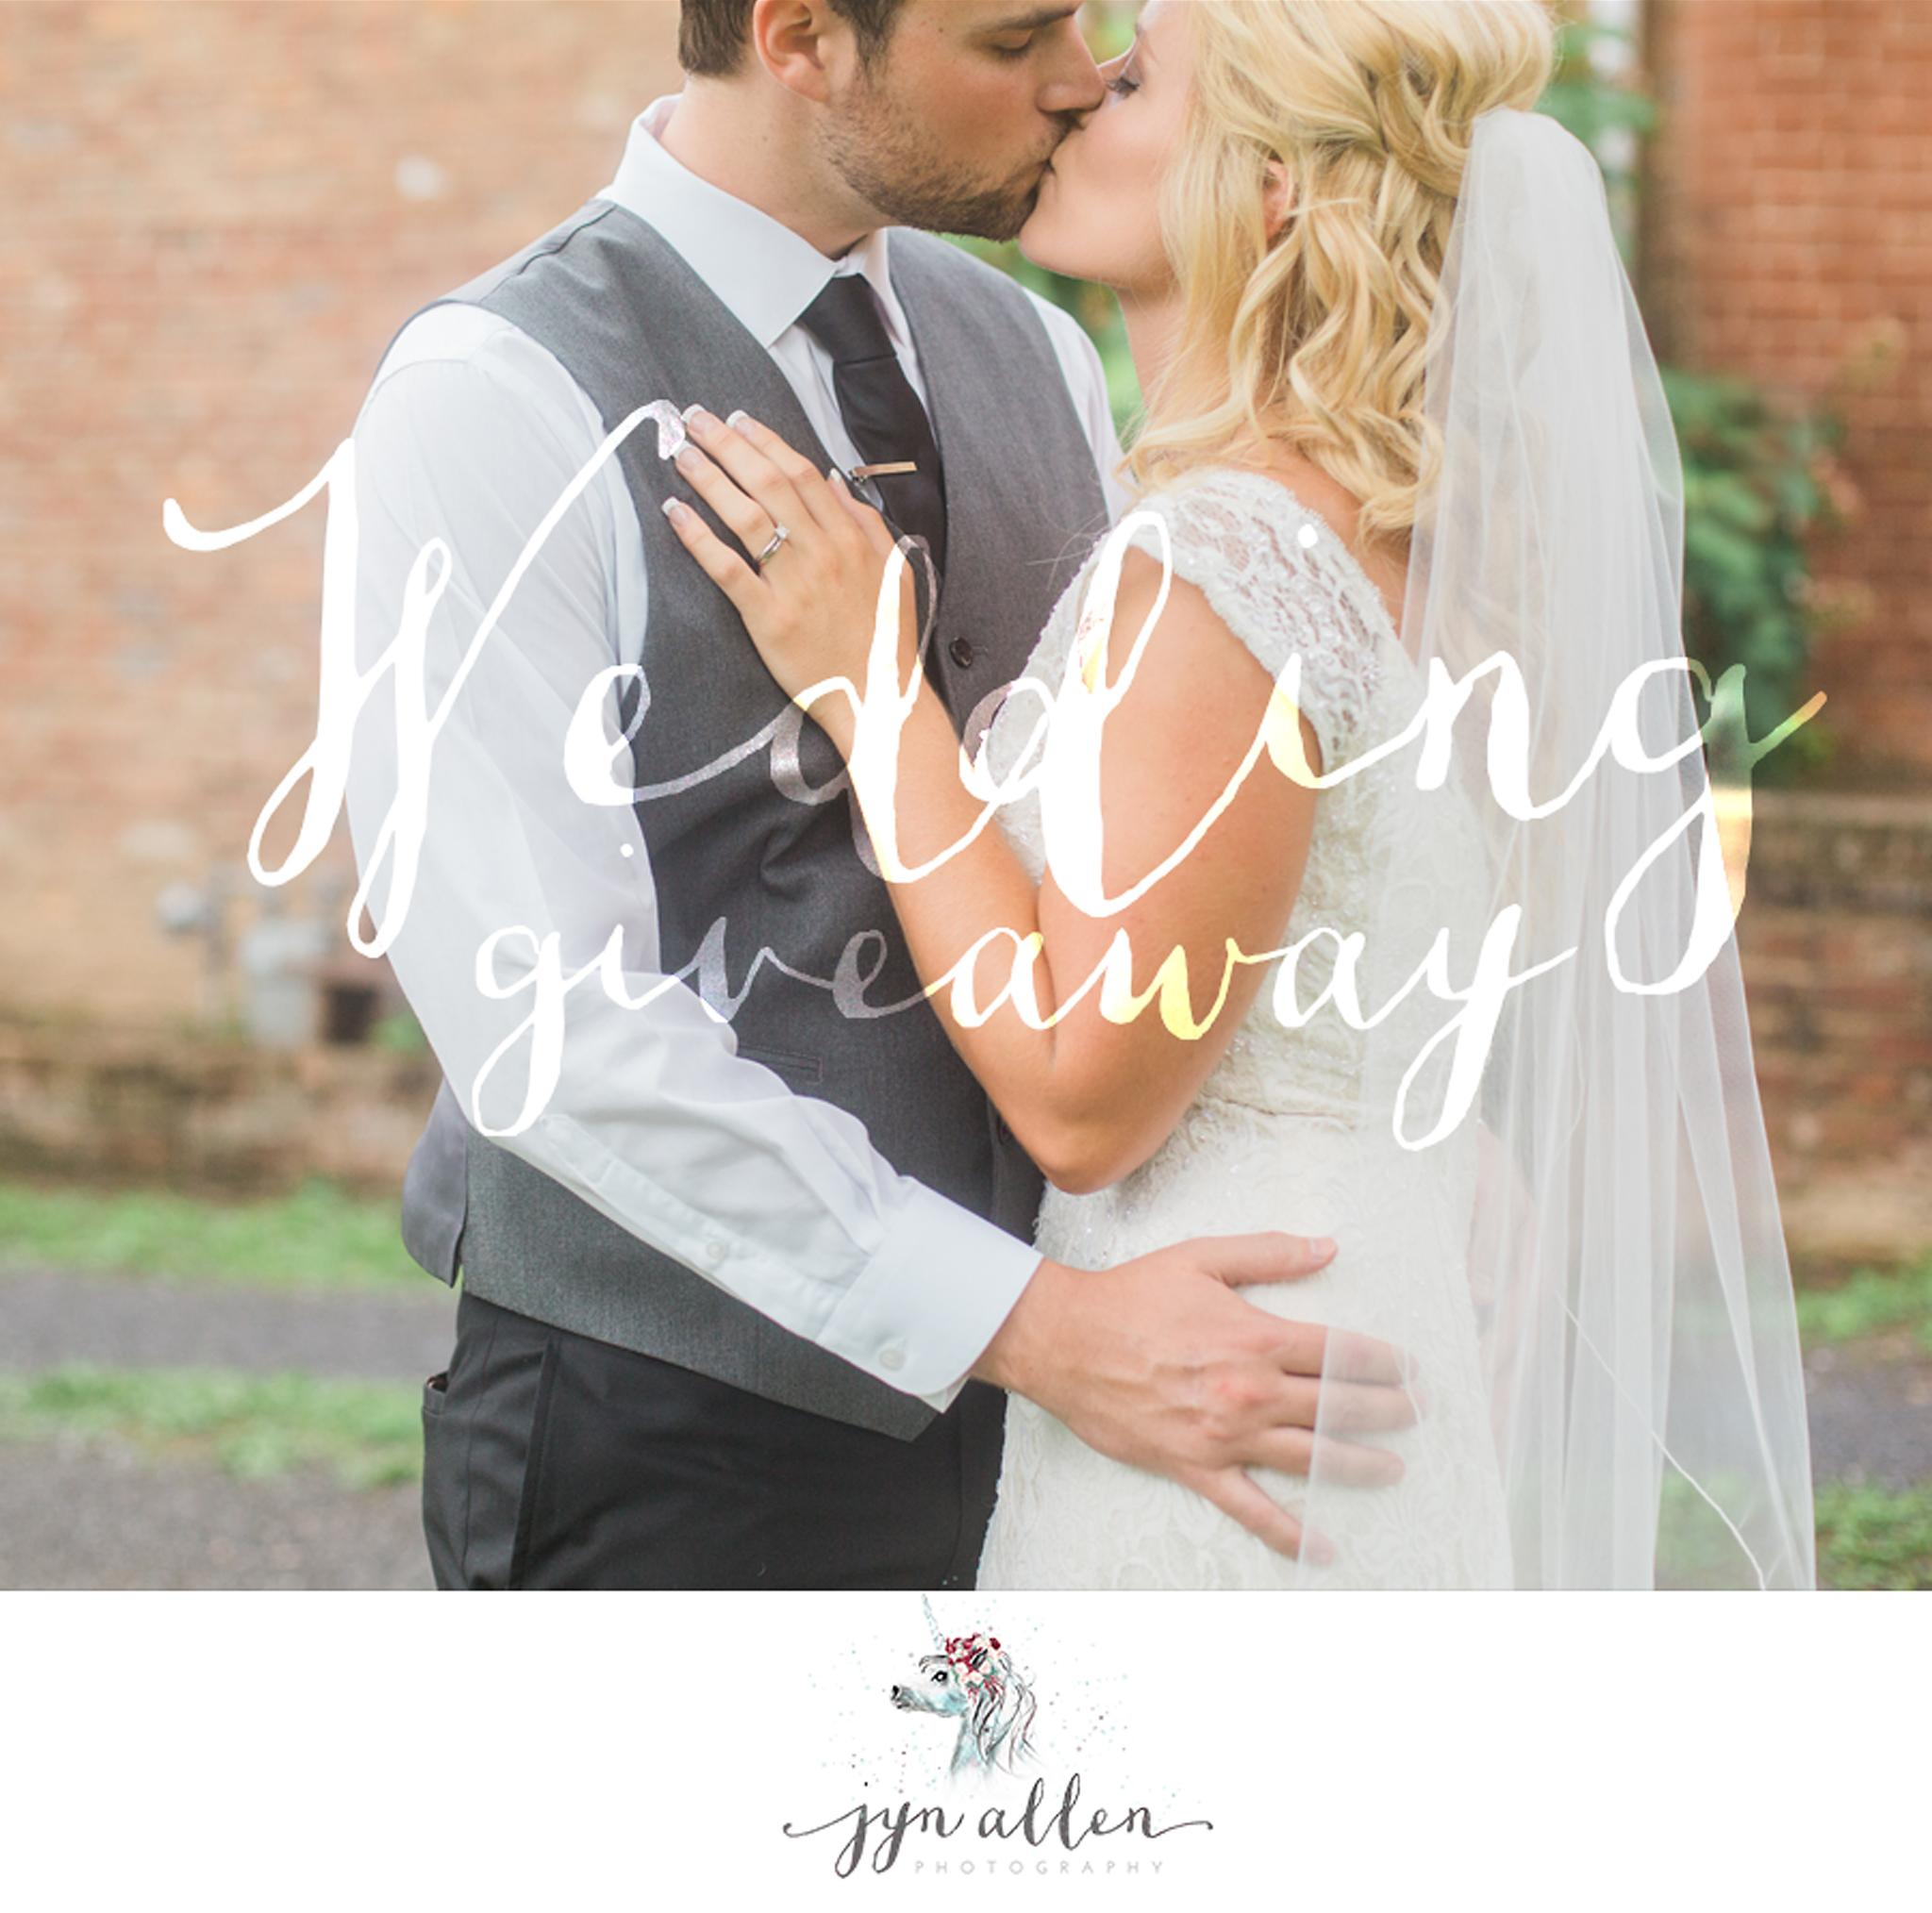 Wedding Giveaway | Win Free Wedding Photography | Tennessee Wedding ...